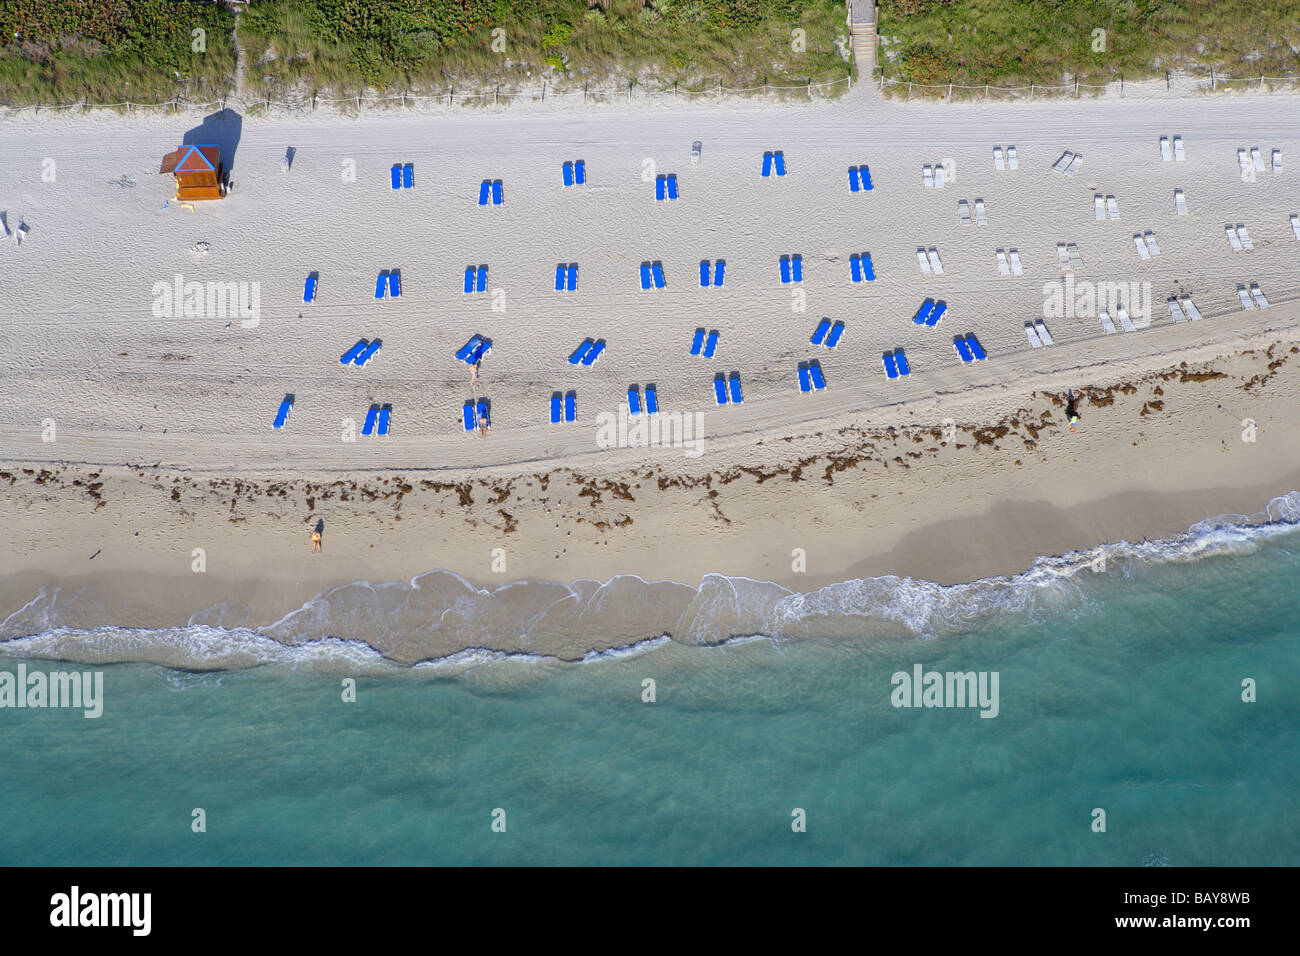 Sandy beach with sun loungers, Miami Beach, Boardwalk district, Florida, United States of America, USA - Stock Image